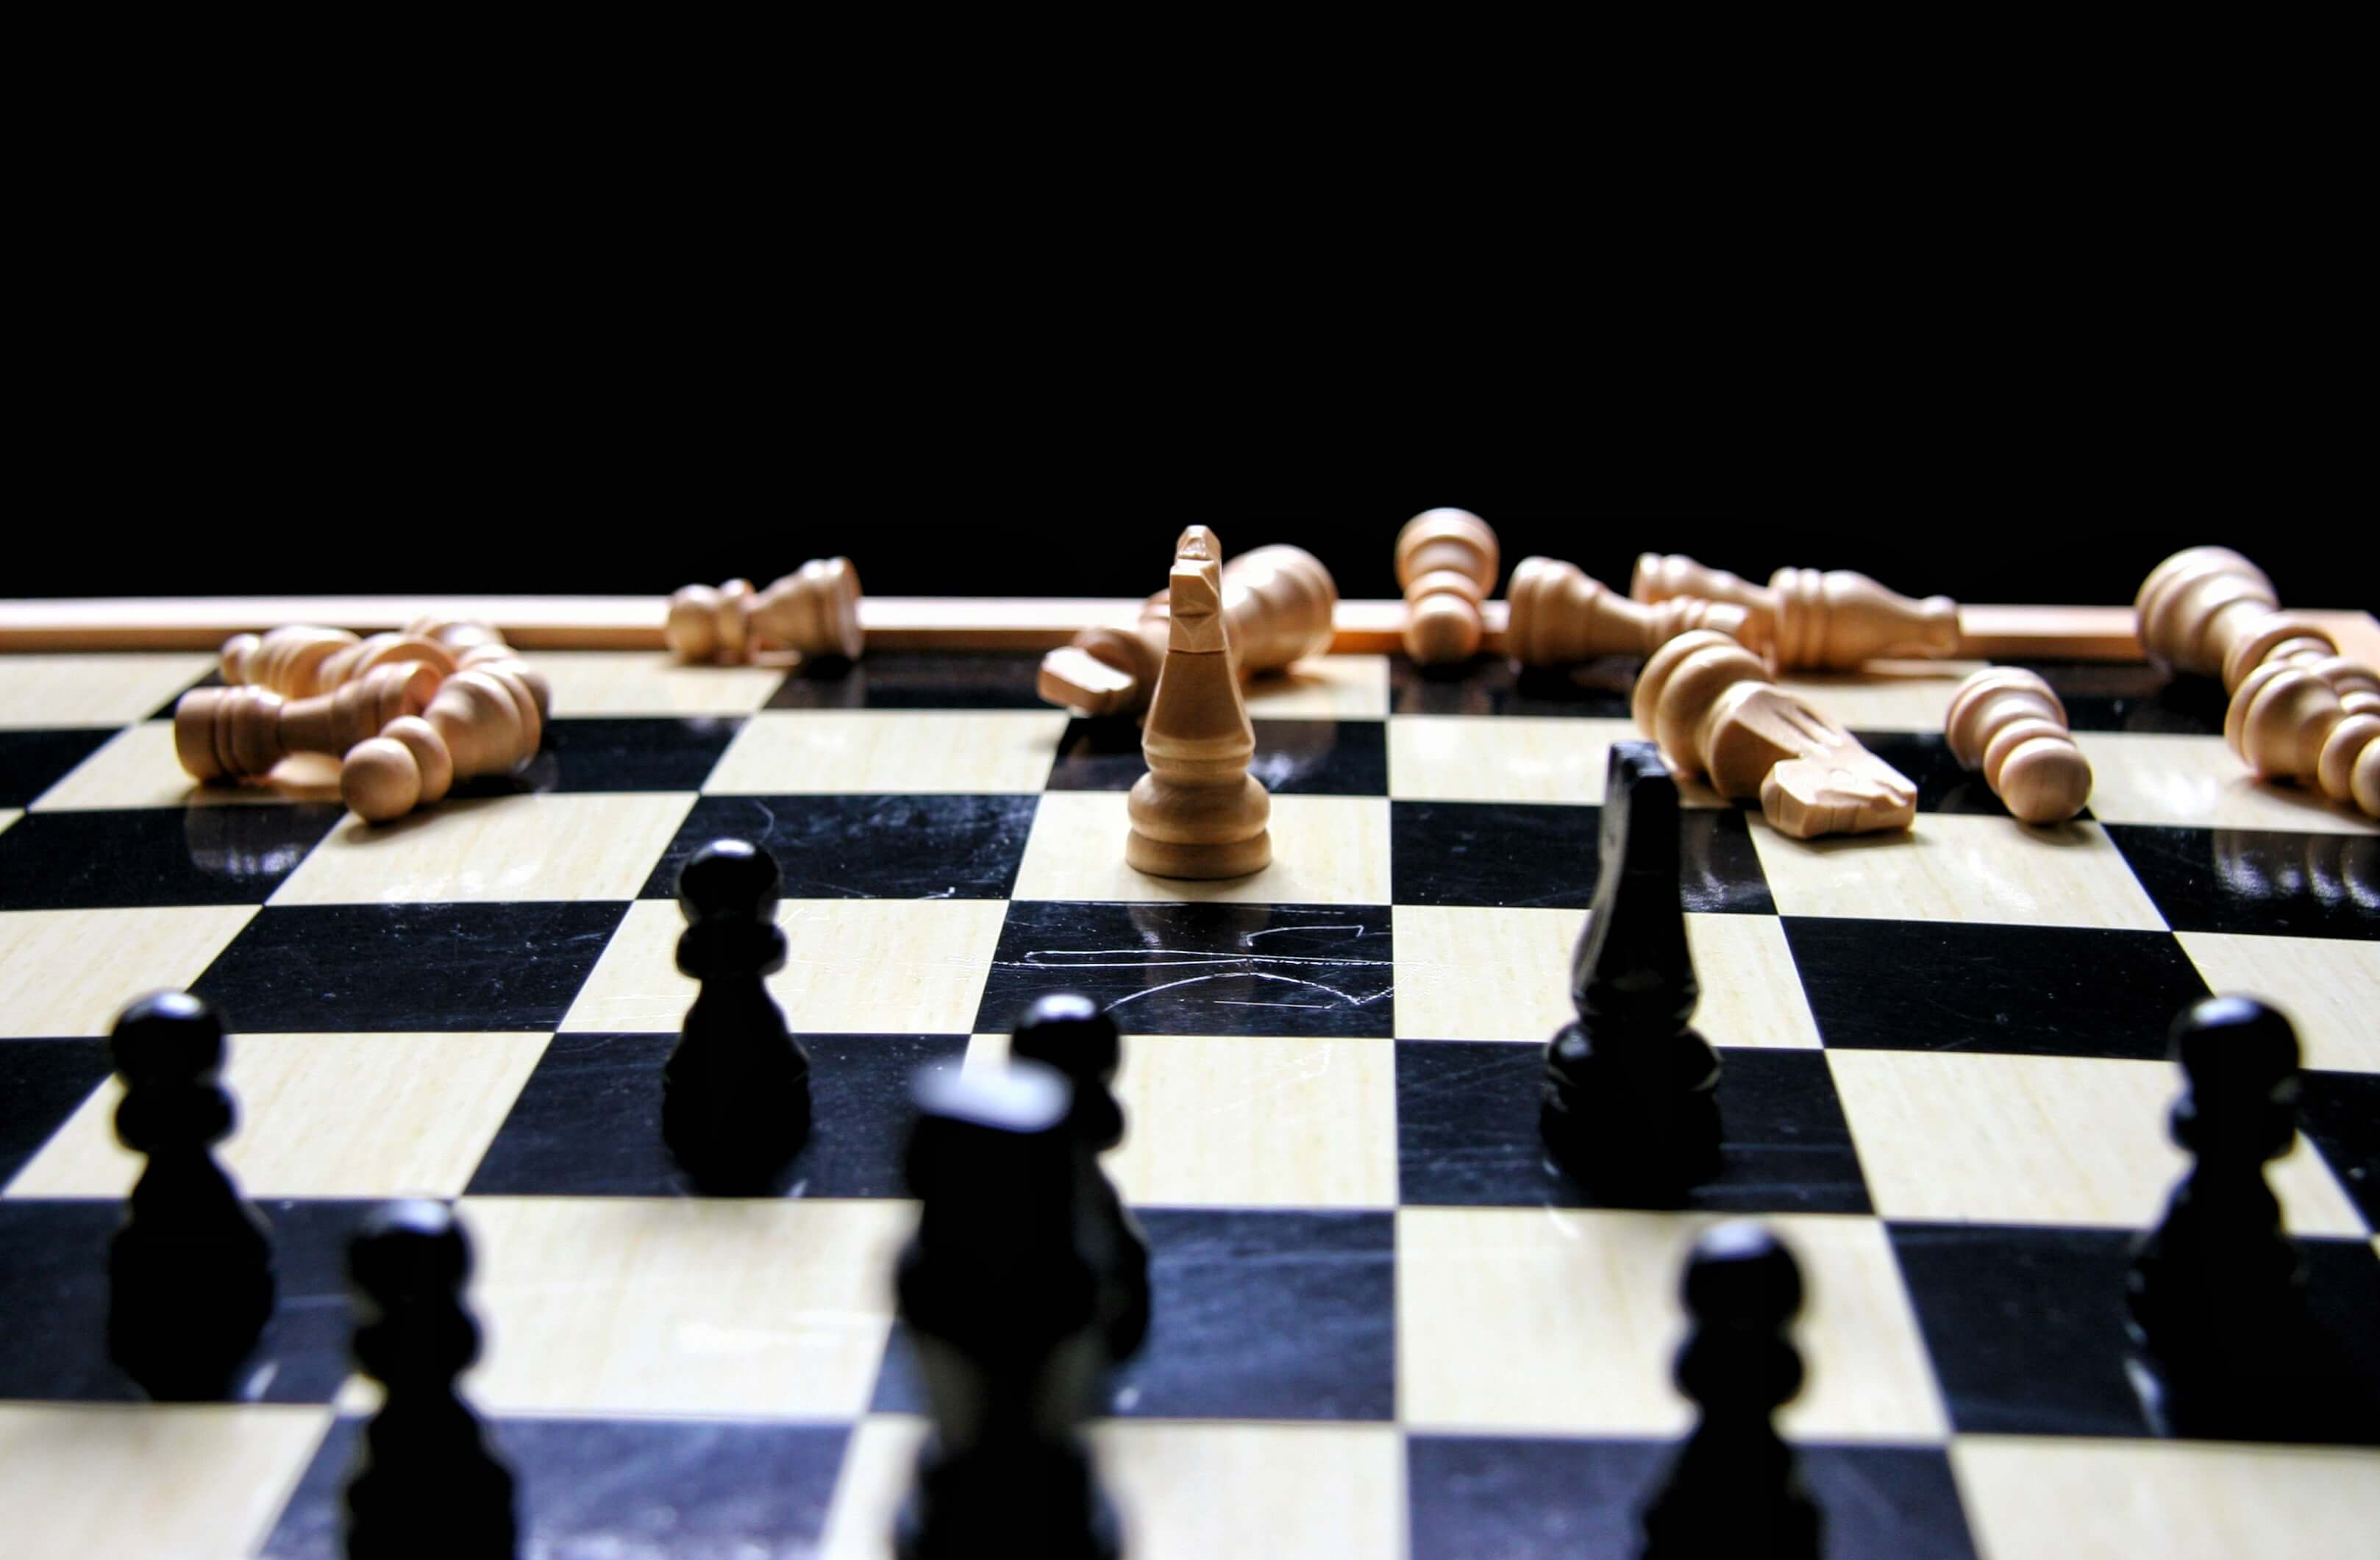 A chess game being played